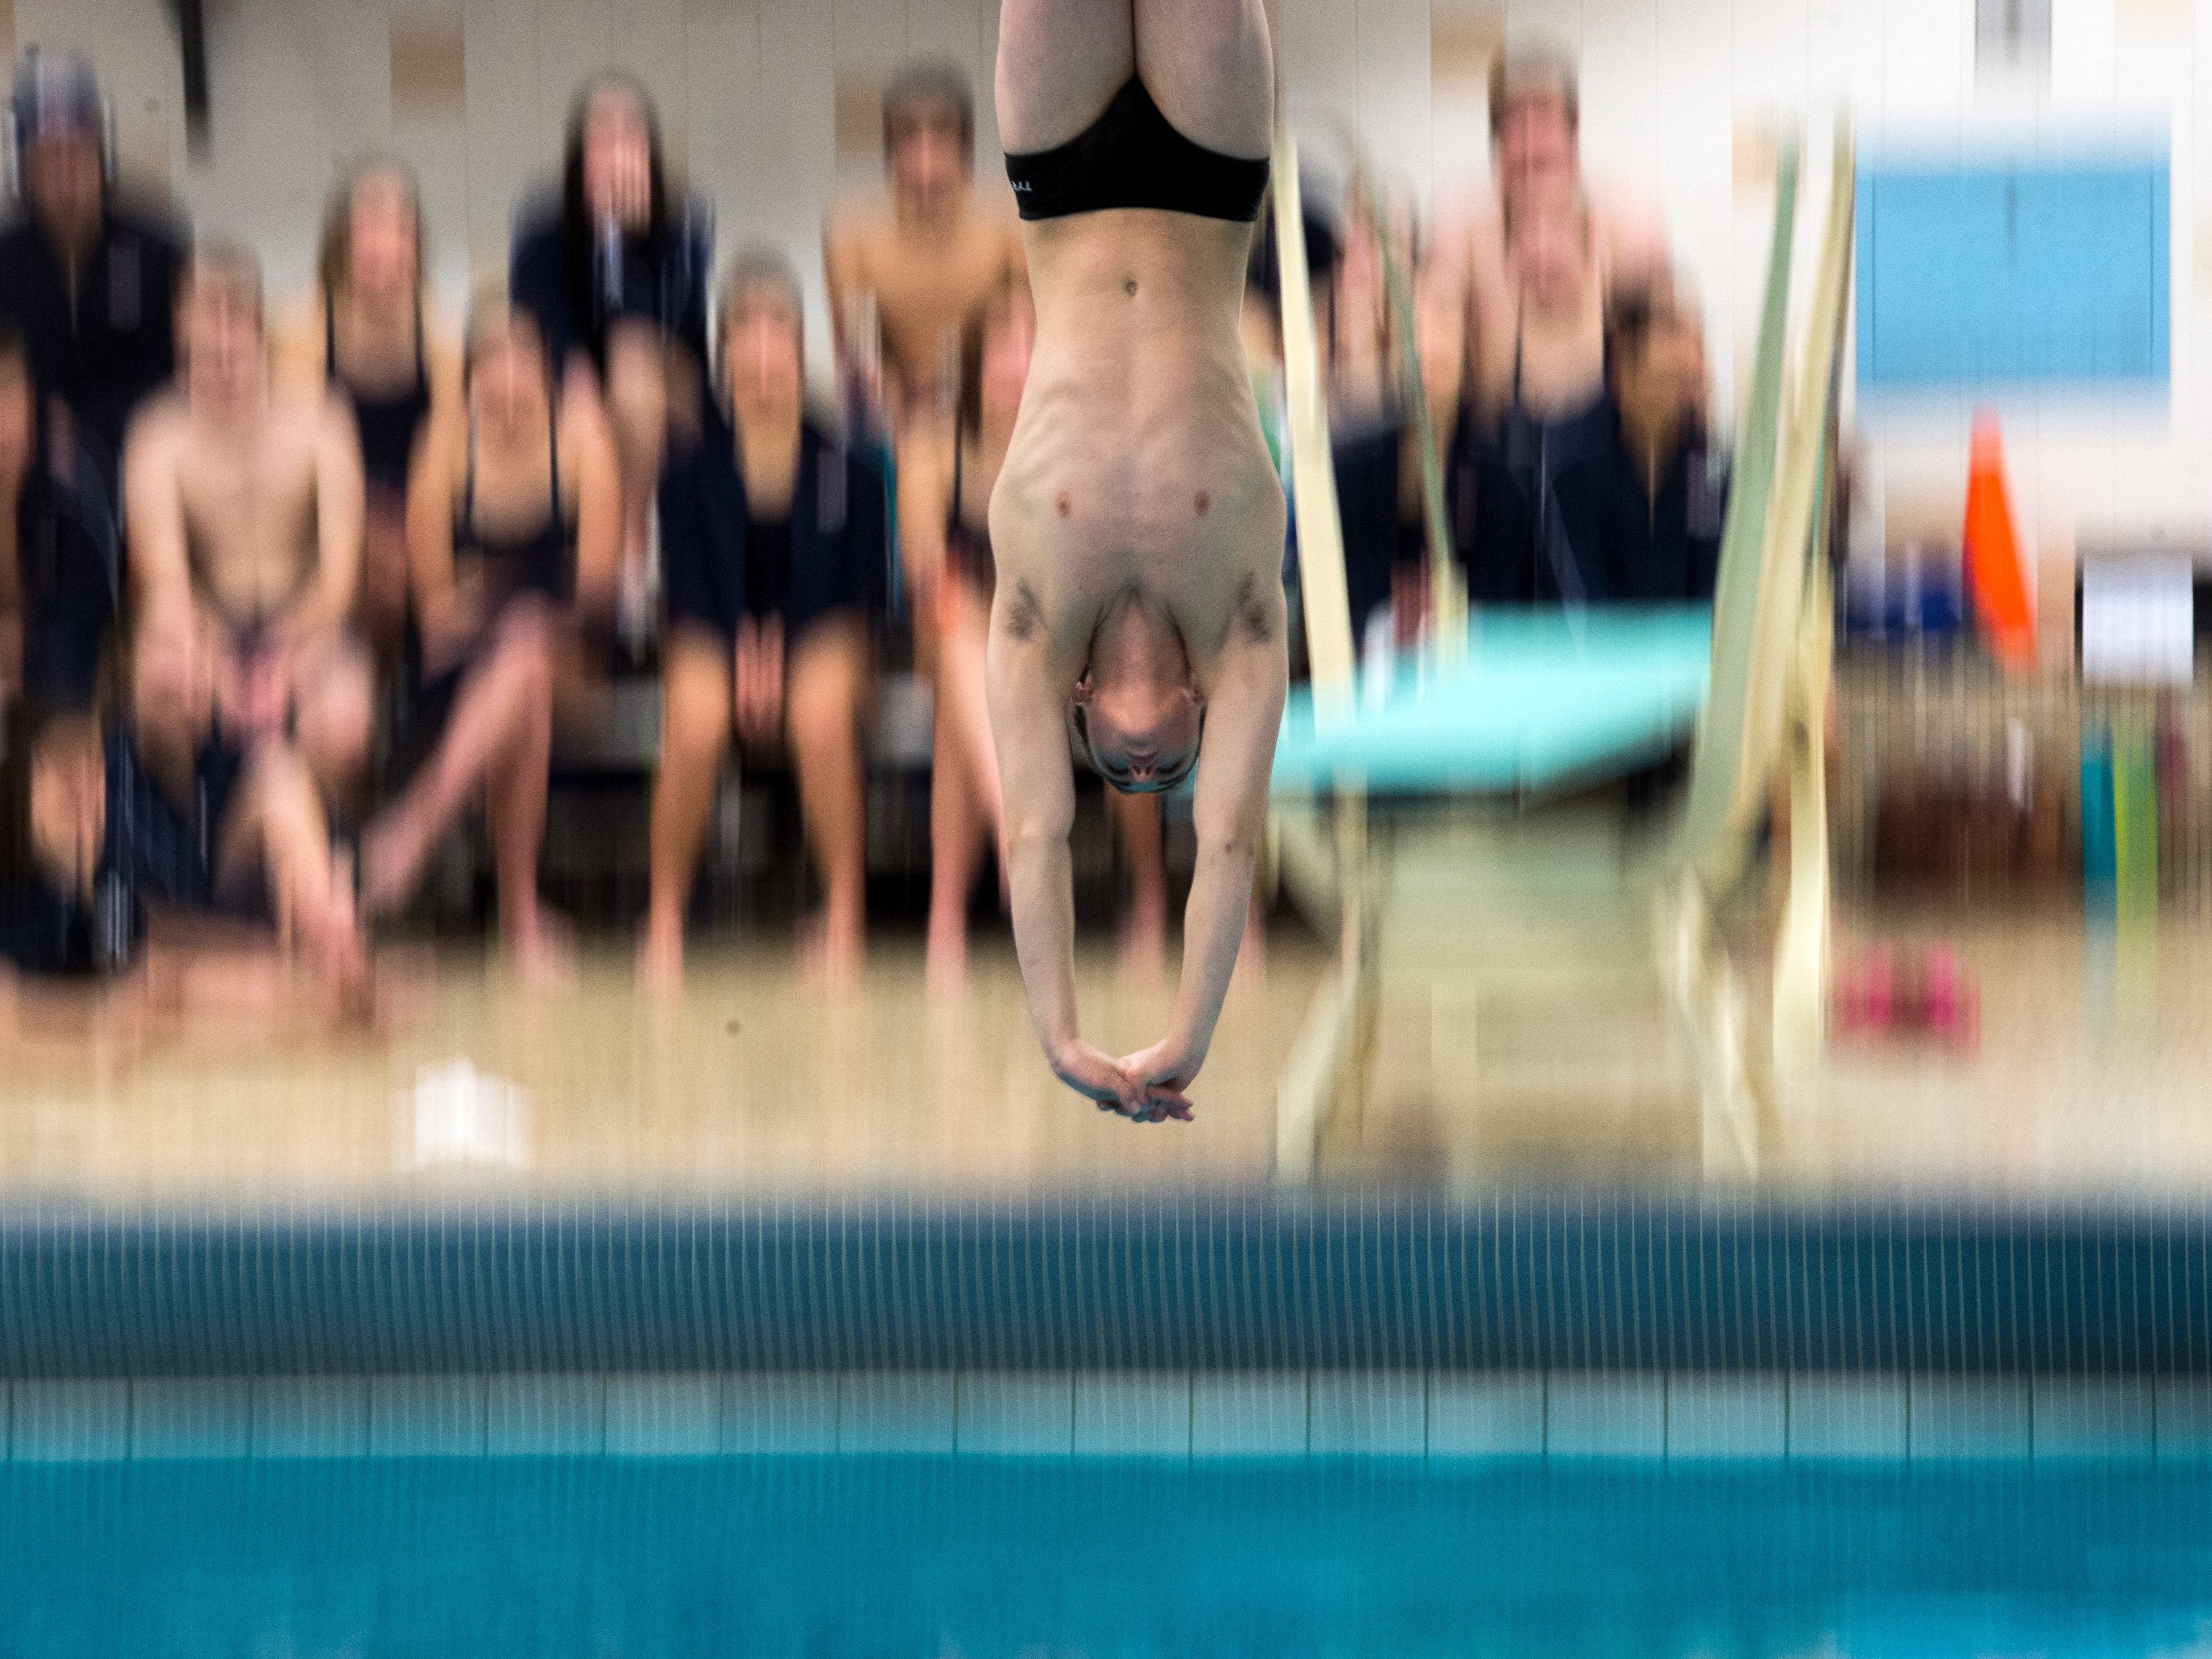 South Western divers compete during New Oxford's senior night at South Western, Thursday, Jan. 4, 2018. The South Western Mustangs beat the New Oxford Colonials, 121-59 for the boys; 104-79 for the girls.